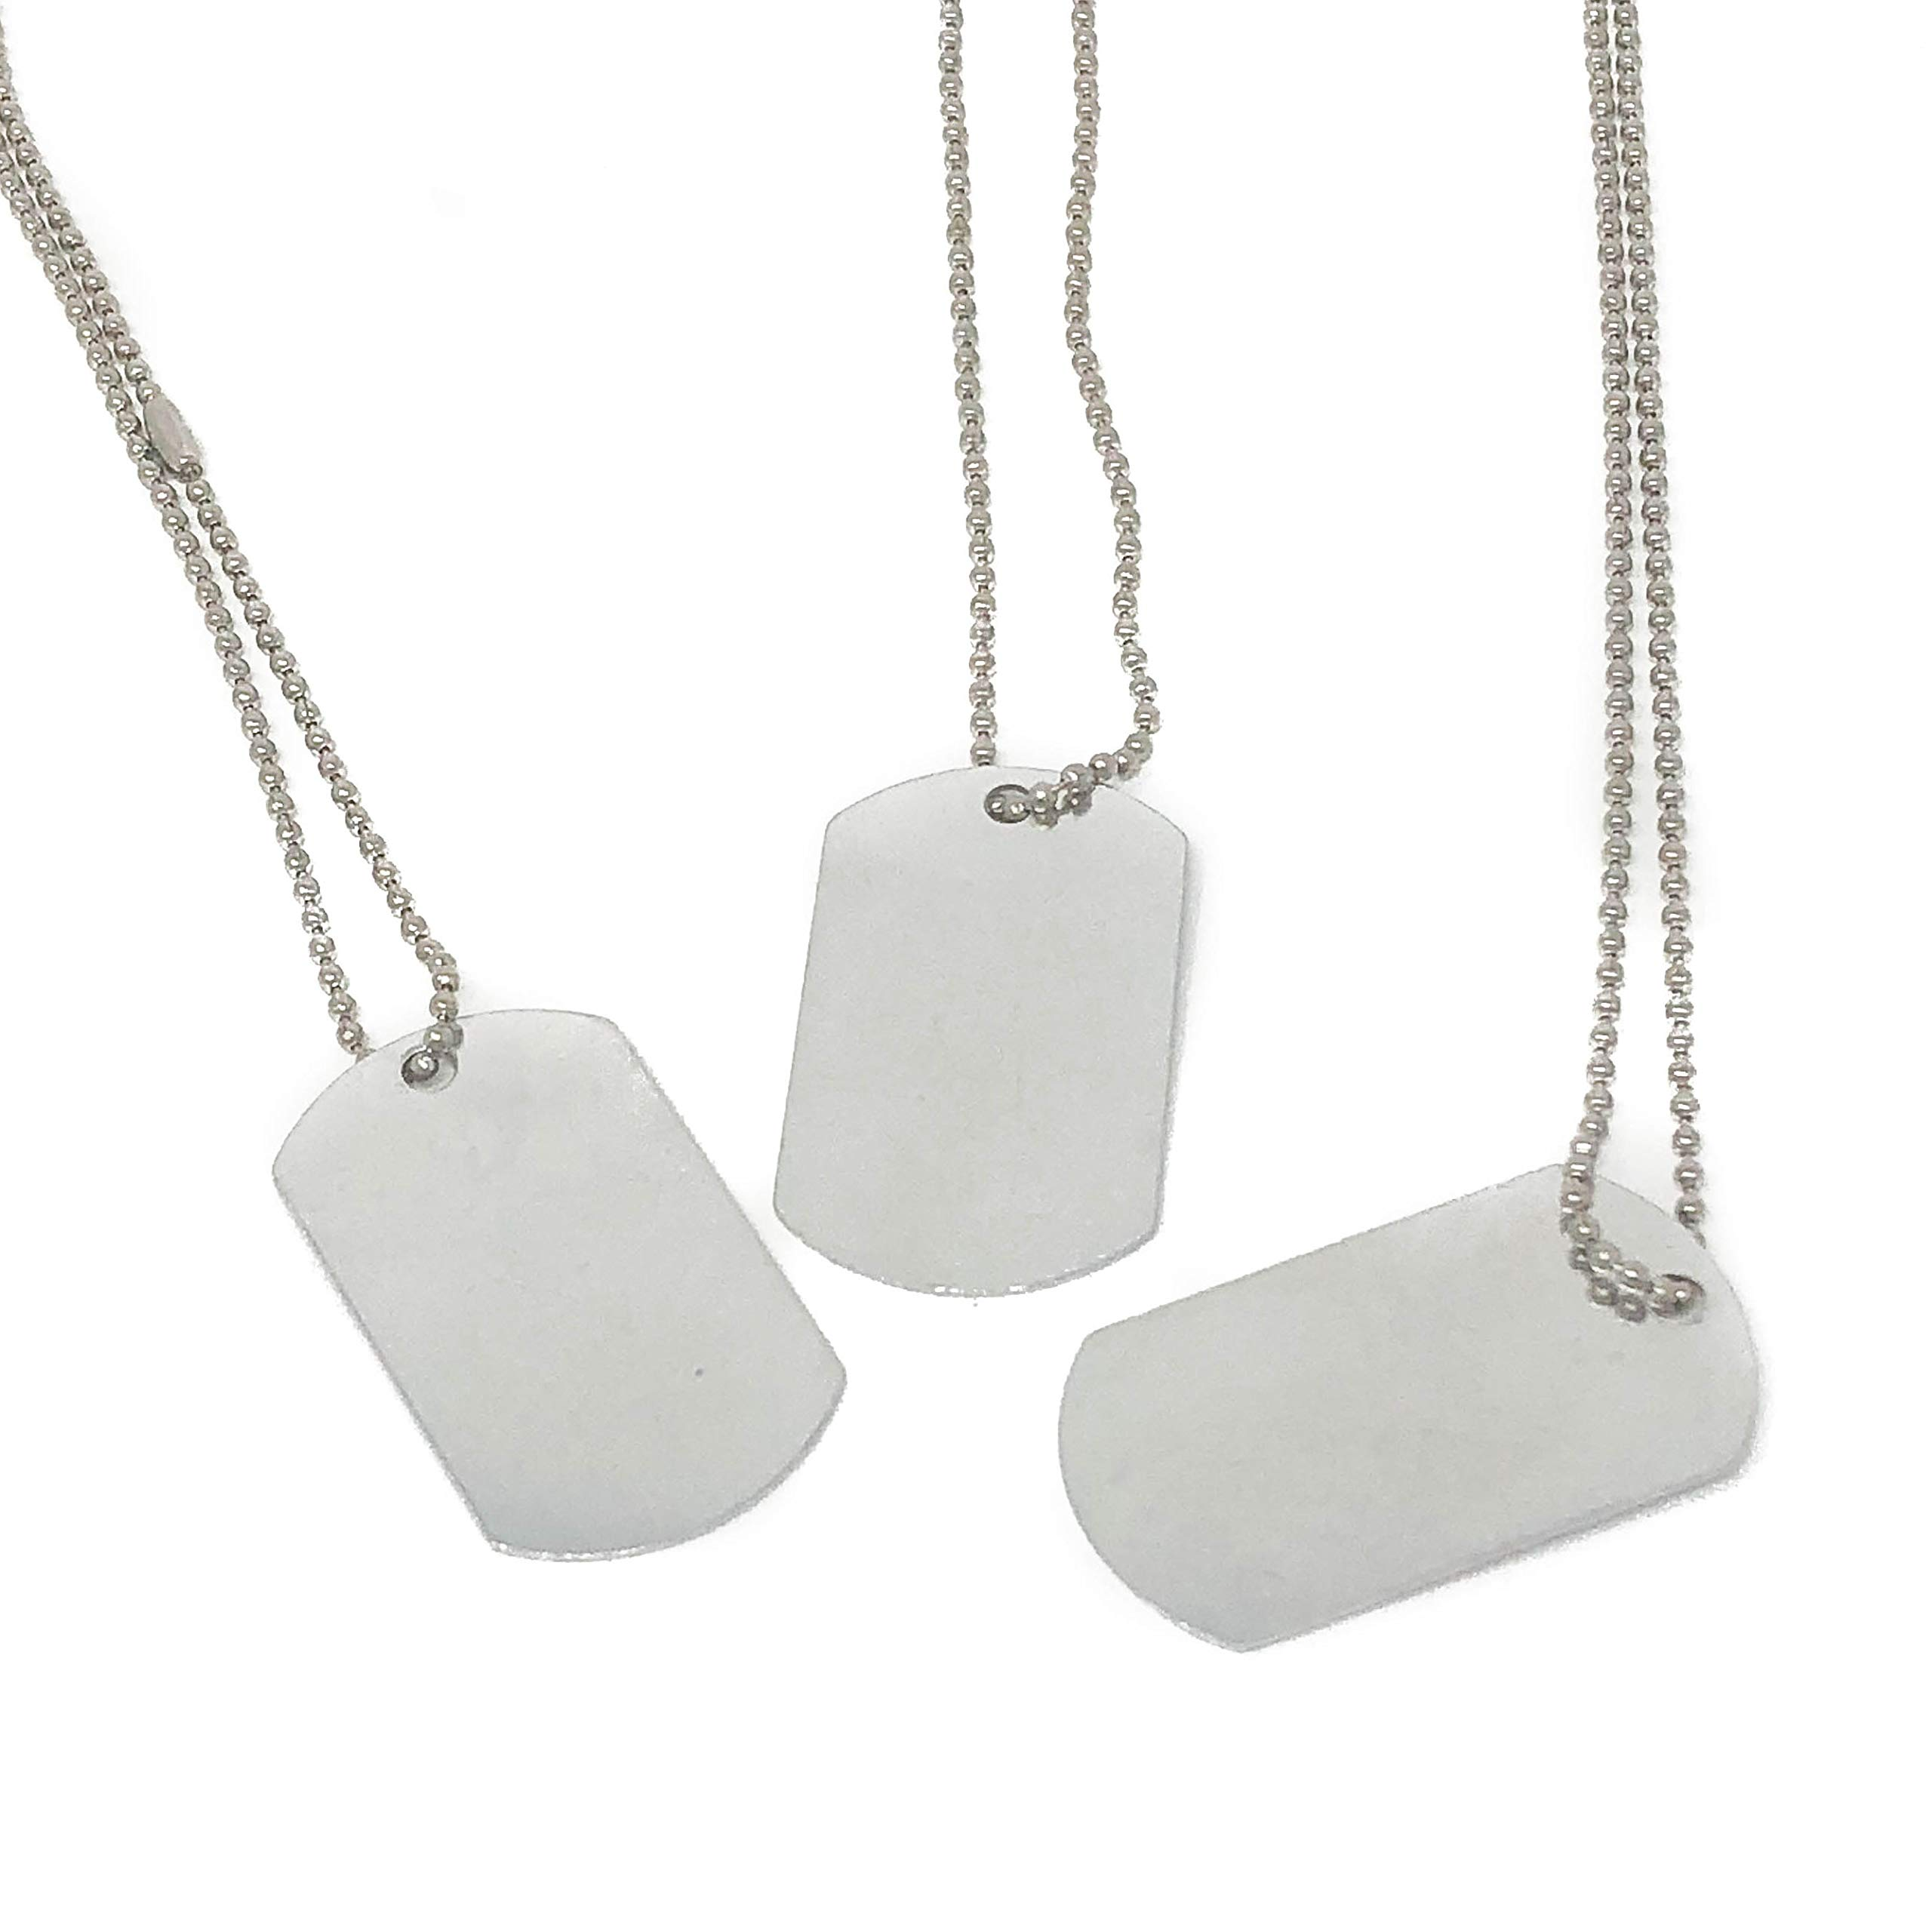 24 Piece Military Dog Tags for Kids - Silver Necklaces by Podzly